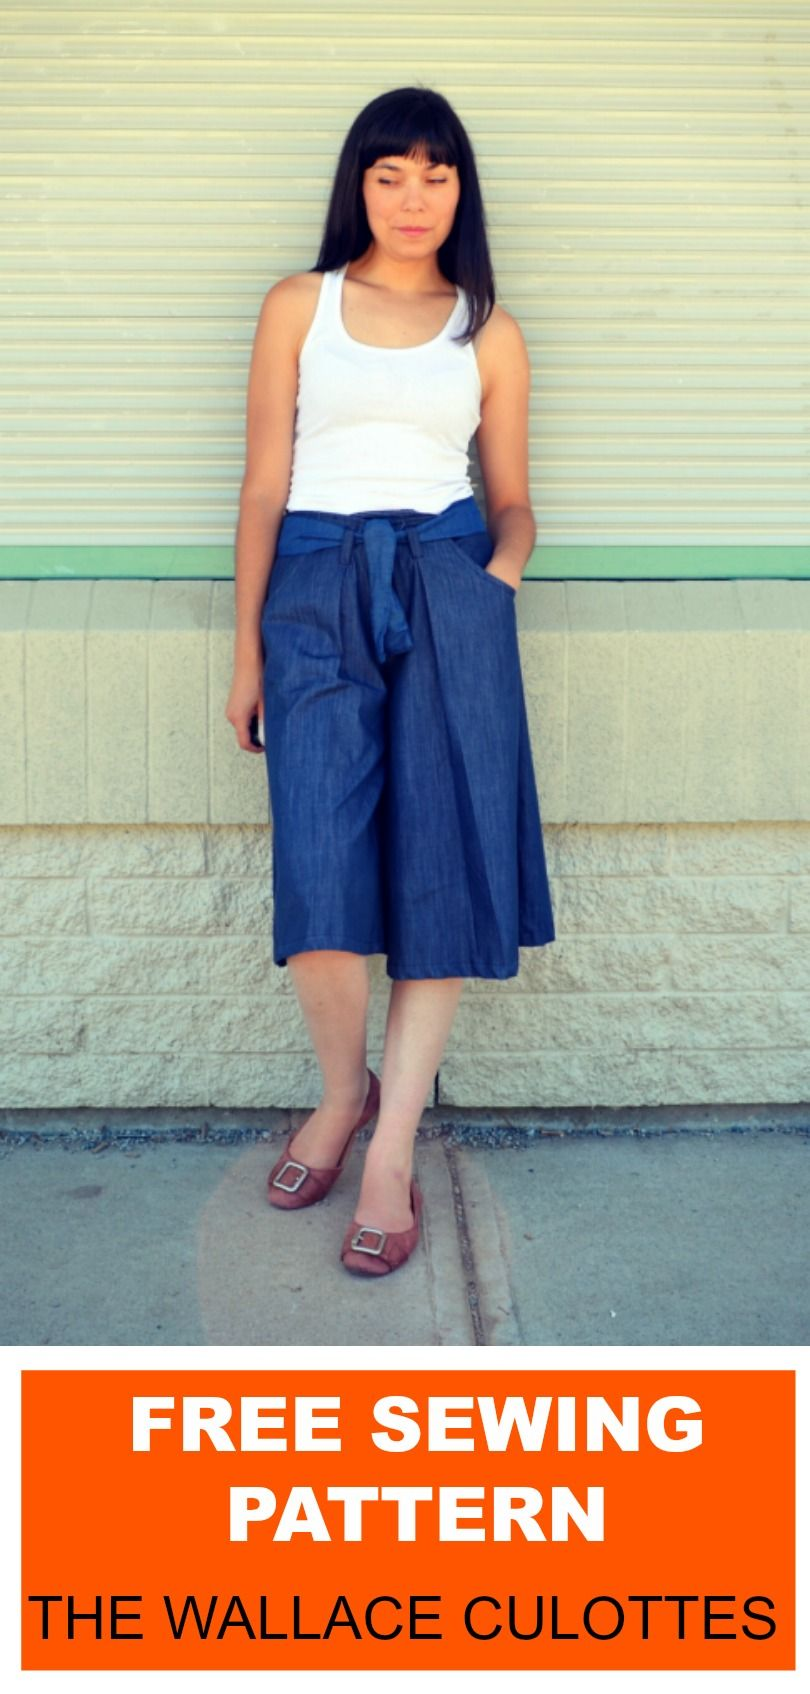 SEWING TUTORIAL: How to Make the Wallace Culottes | Nähideen, Stoff ...